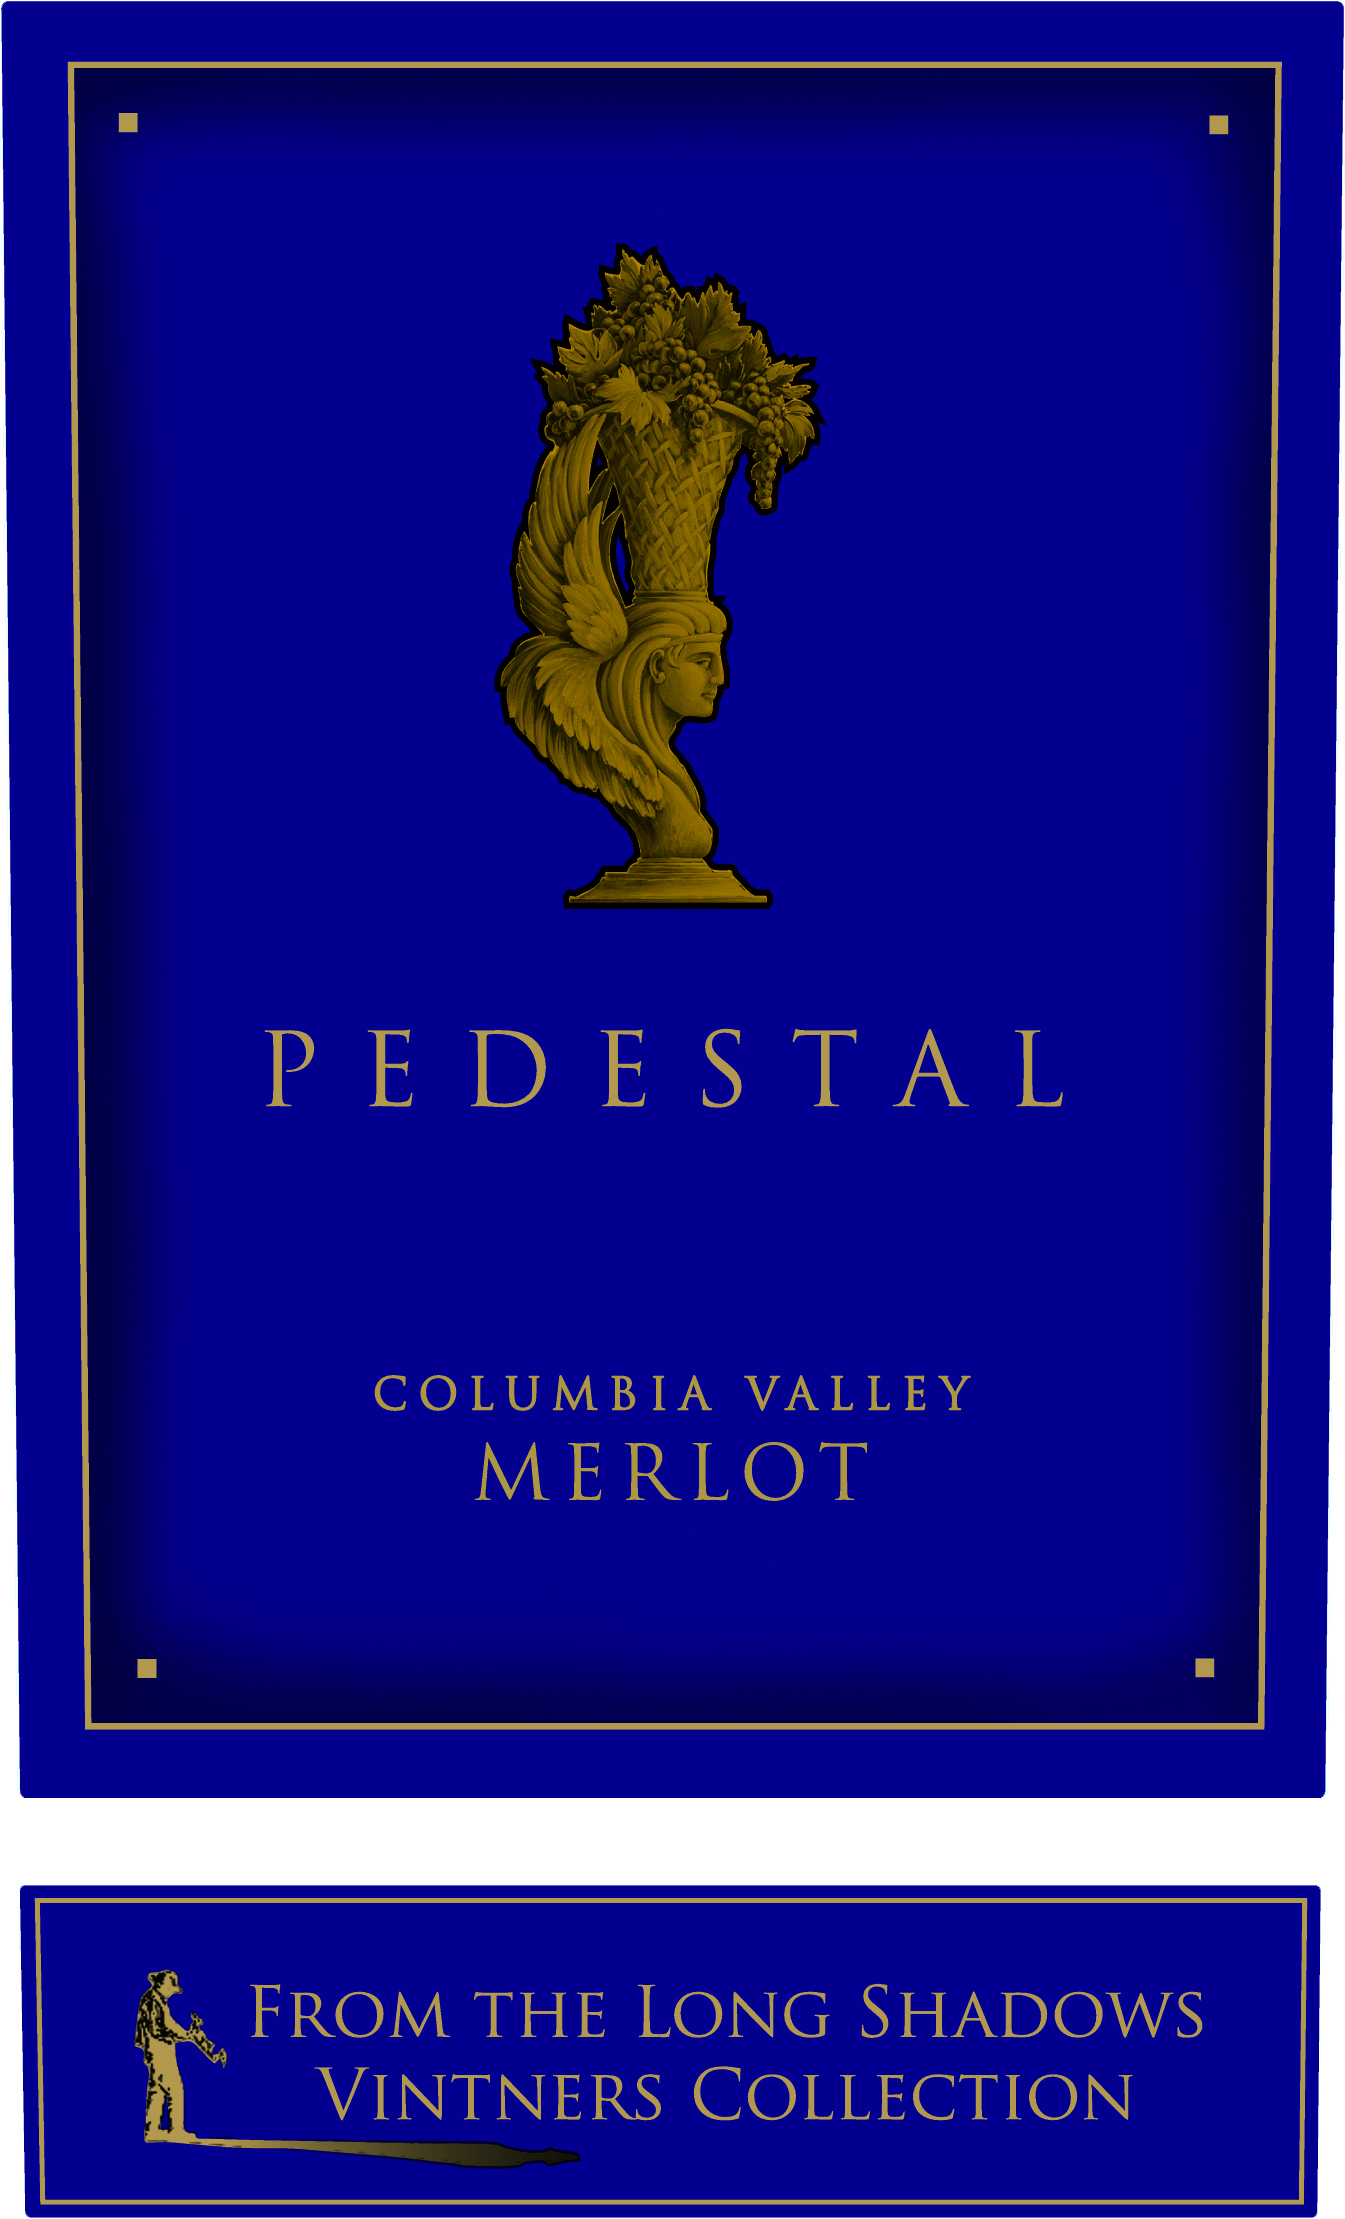 2015 Long Shadows Winery Merlot Pedestal